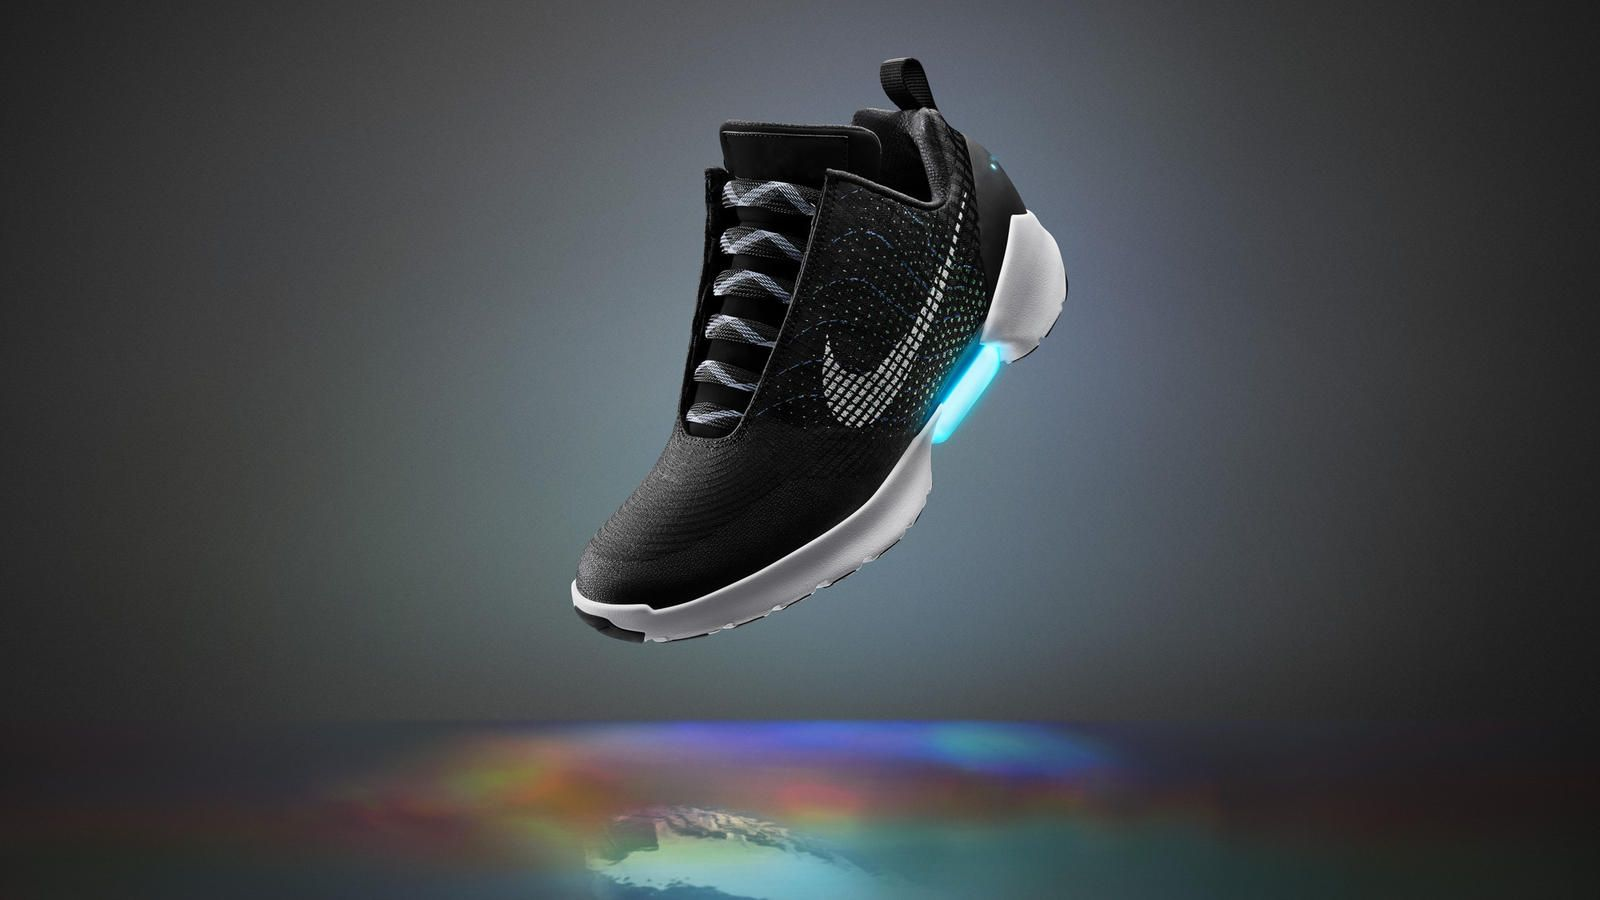 Nike News - Nike HyperAdapt 1.0 Manifests the Unimaginable